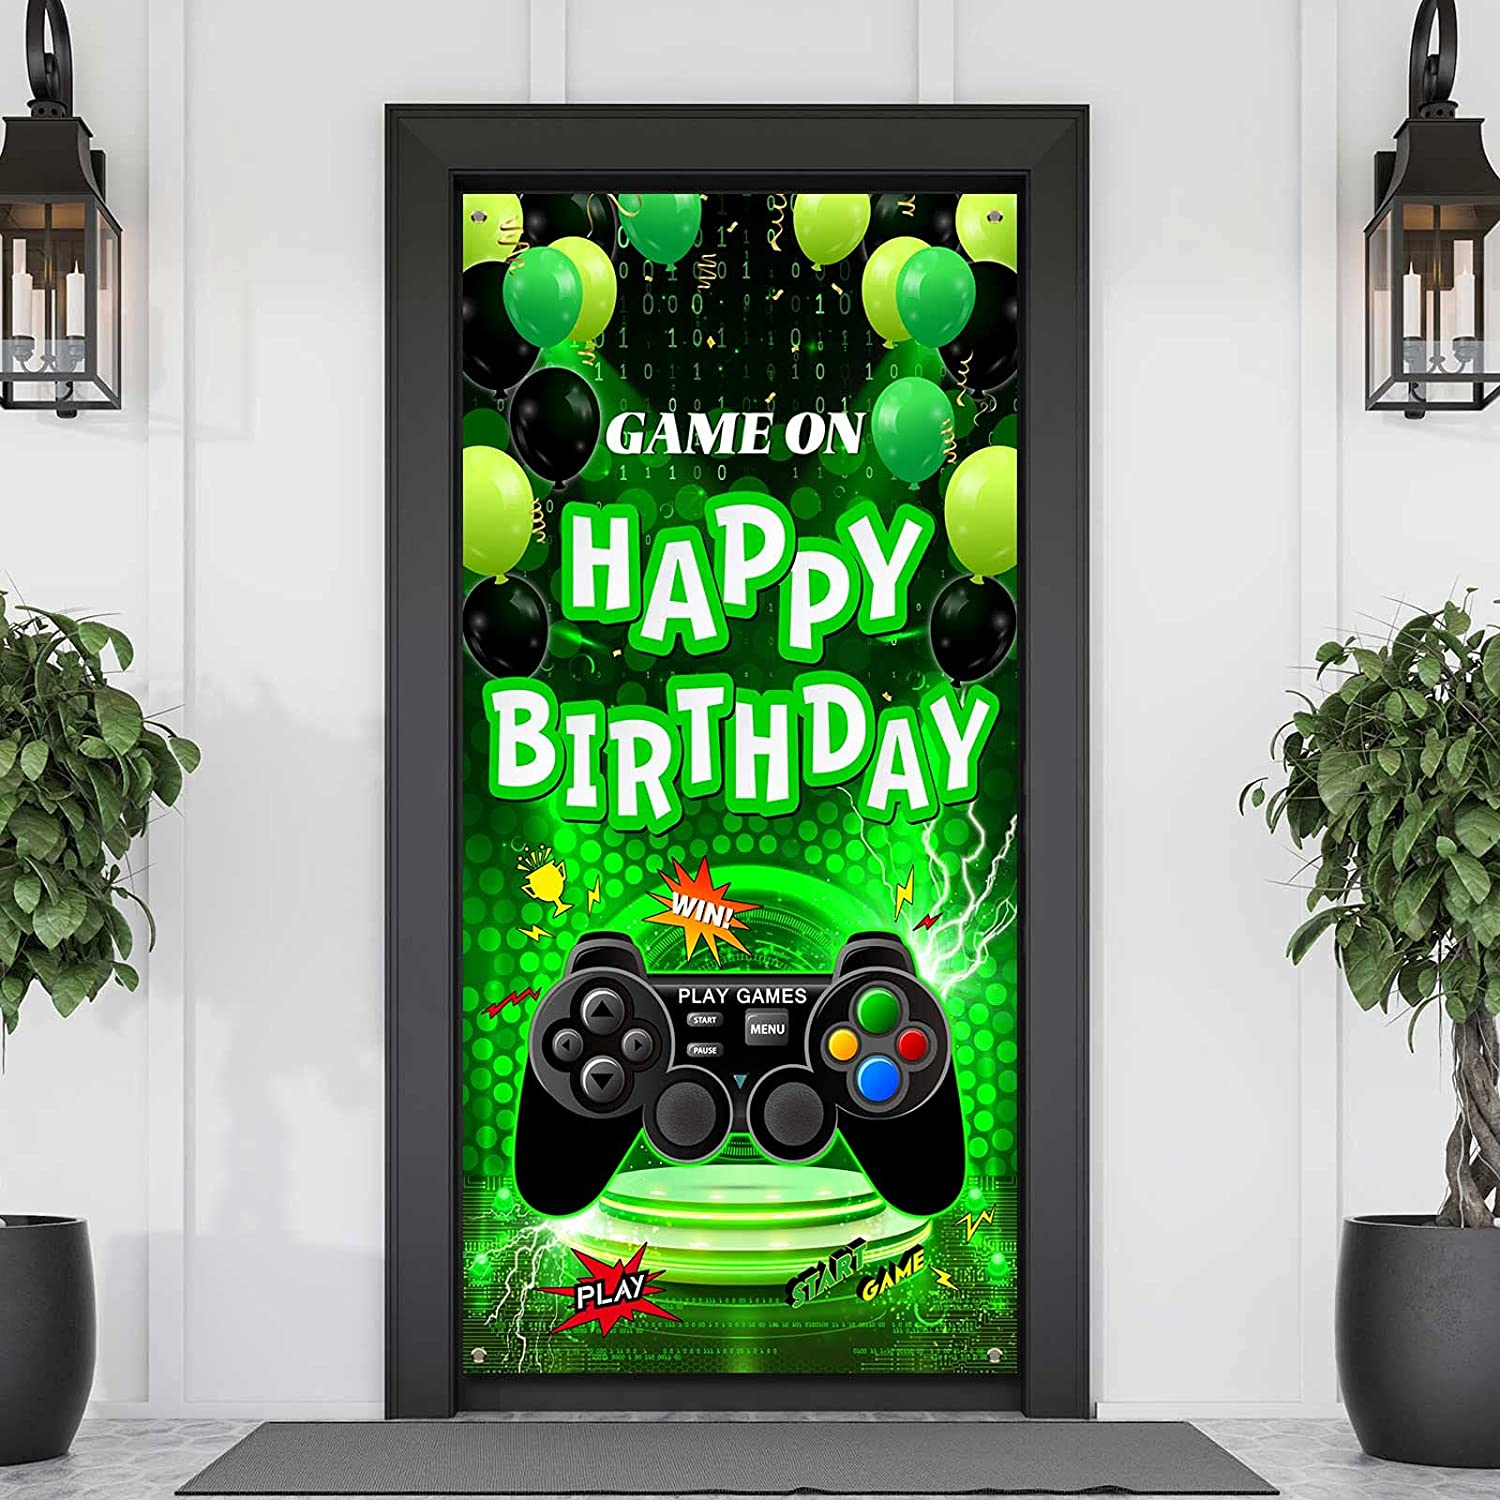 Video Game Free Max 43% OFF shipping New Door Banner Party Birt On Decorations